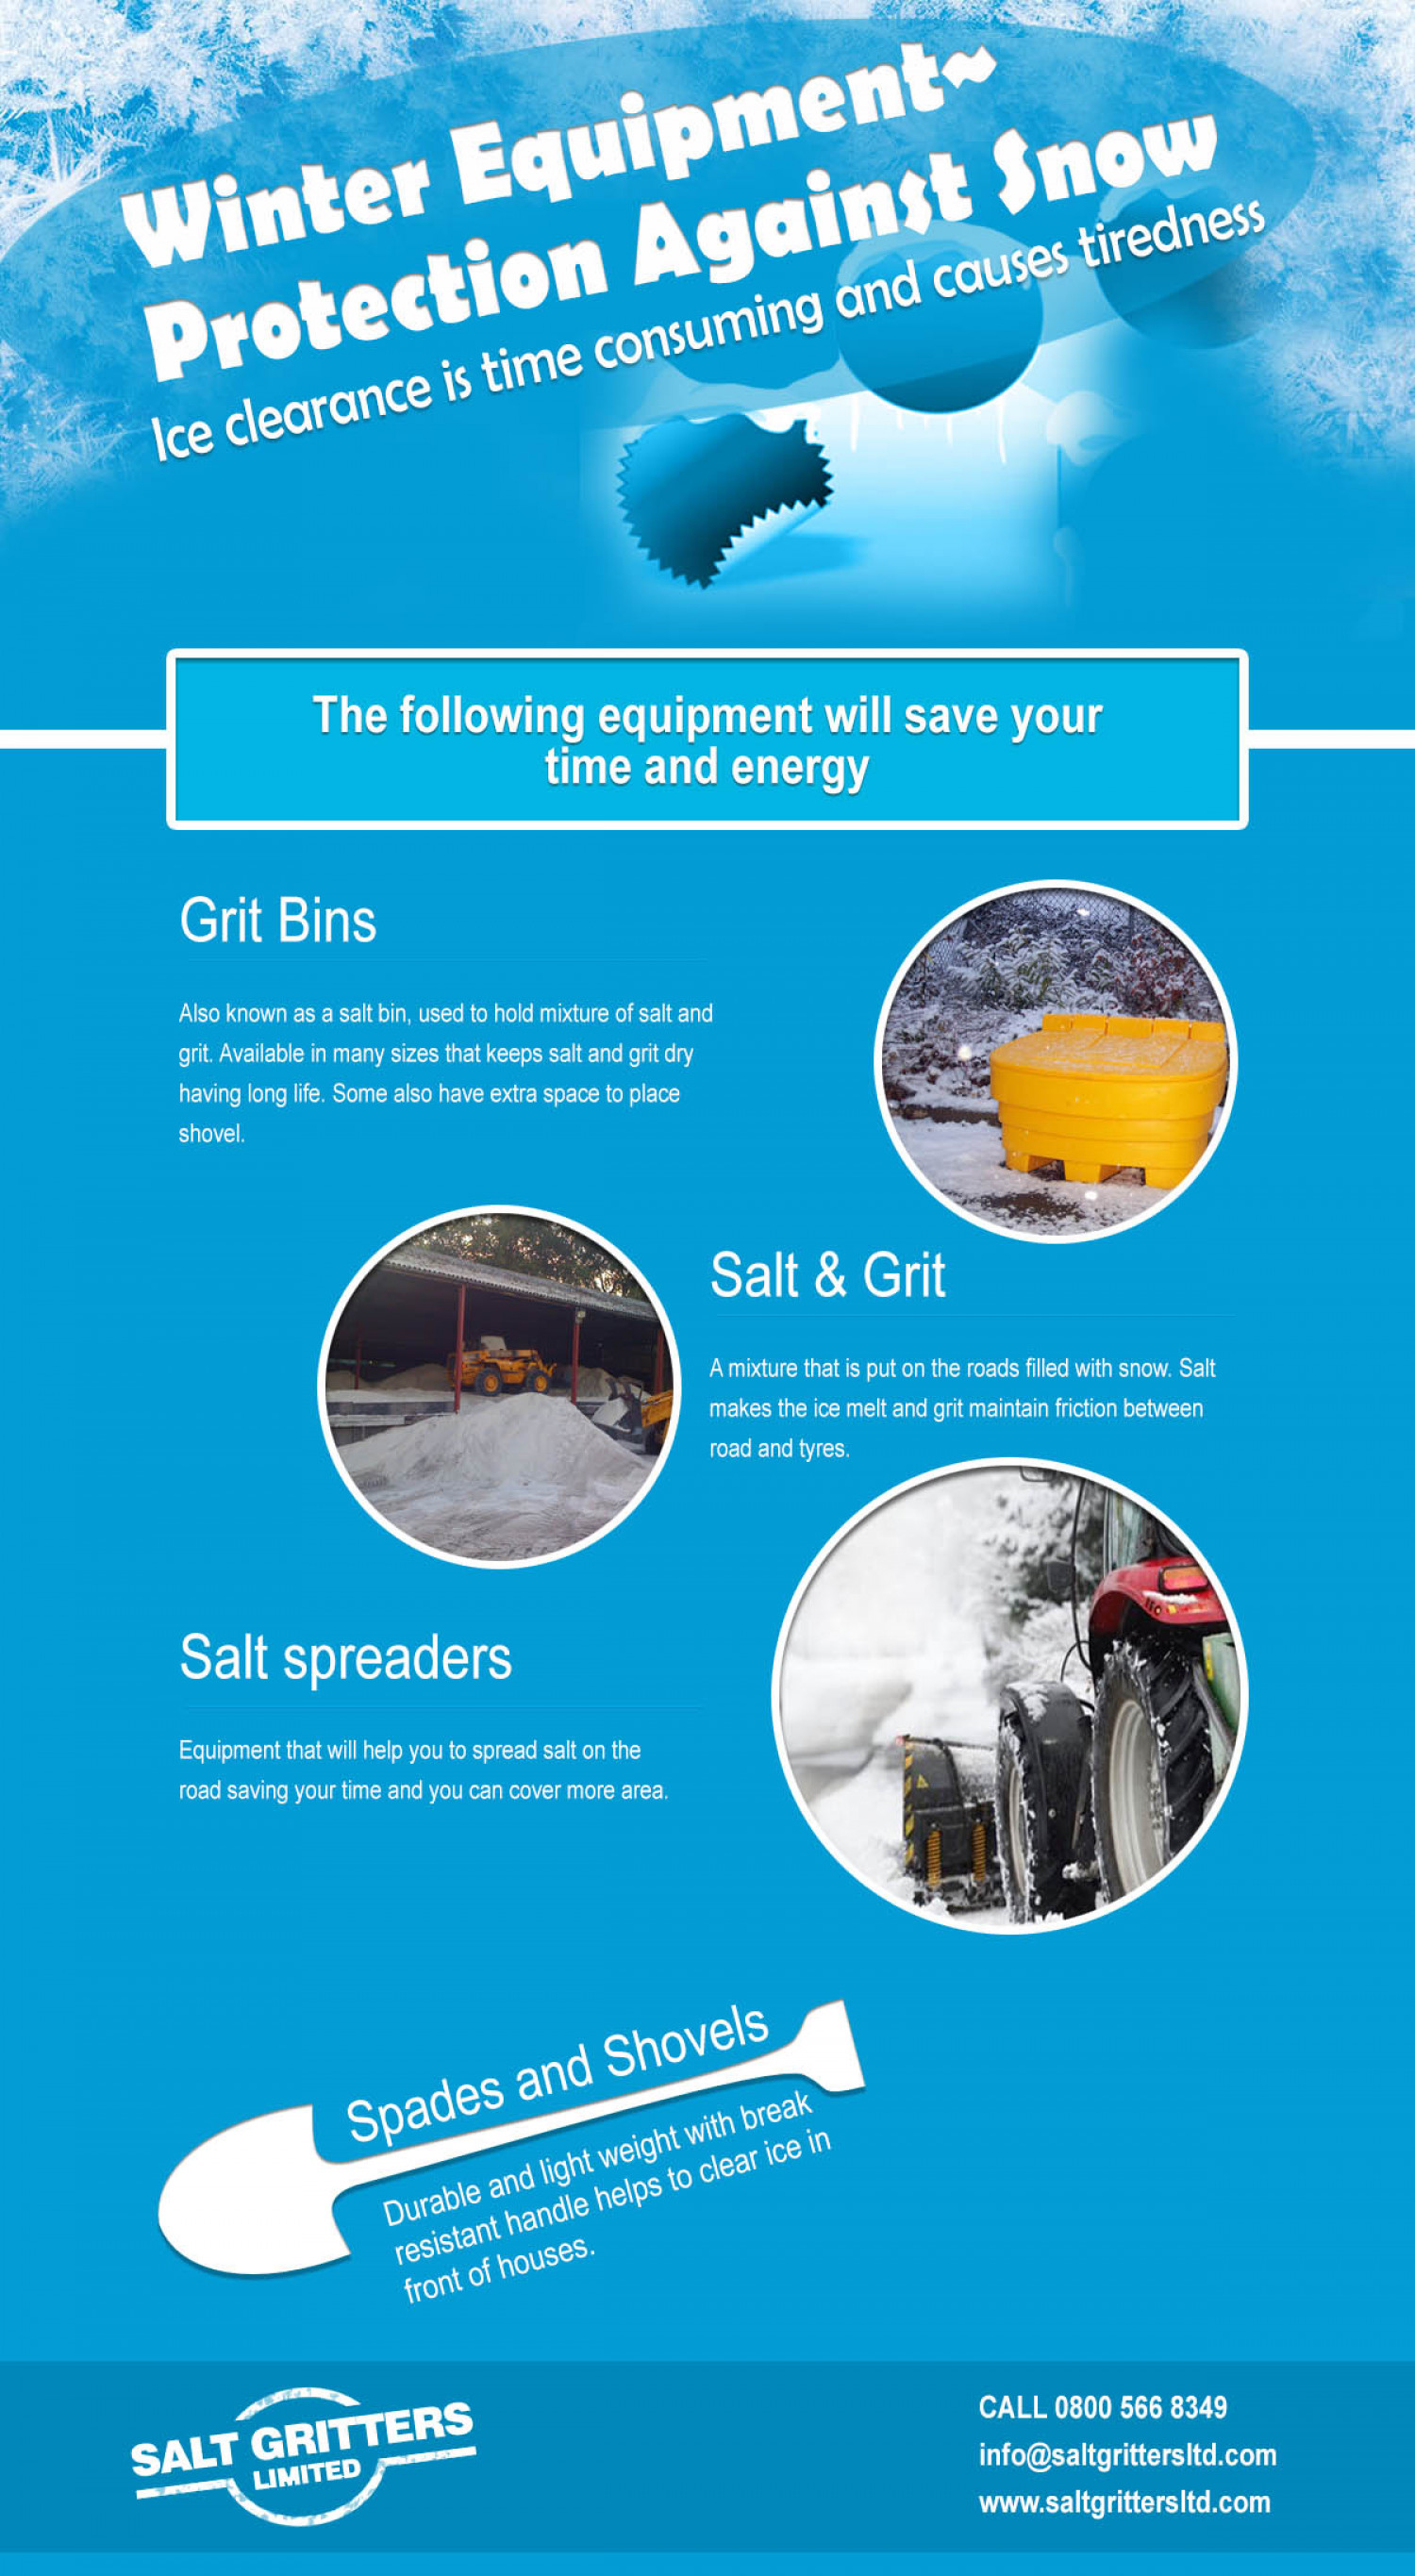 Winter Equipment: Protection Against Snow Infographic